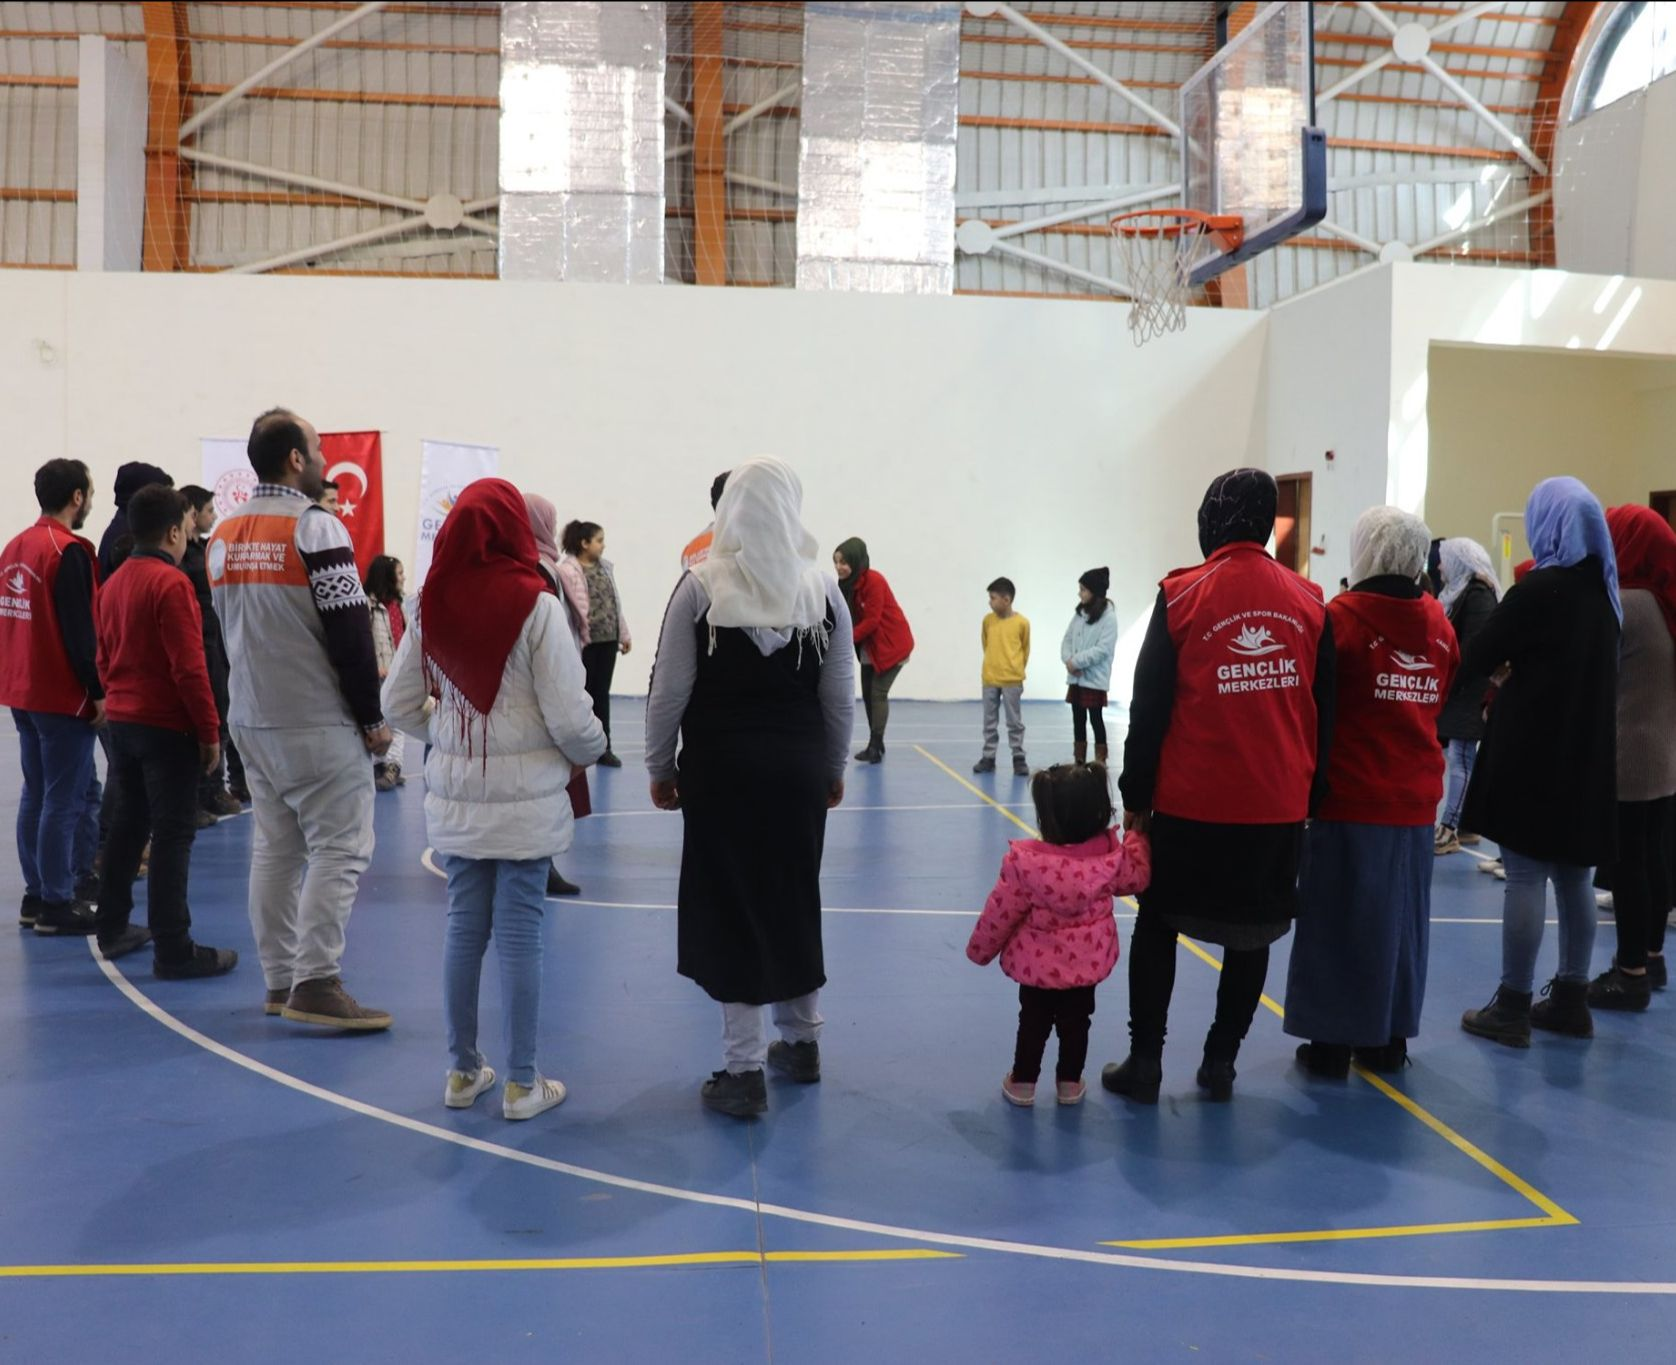 Mental Health Services provide social activities for child integration for Syrians in Turkey